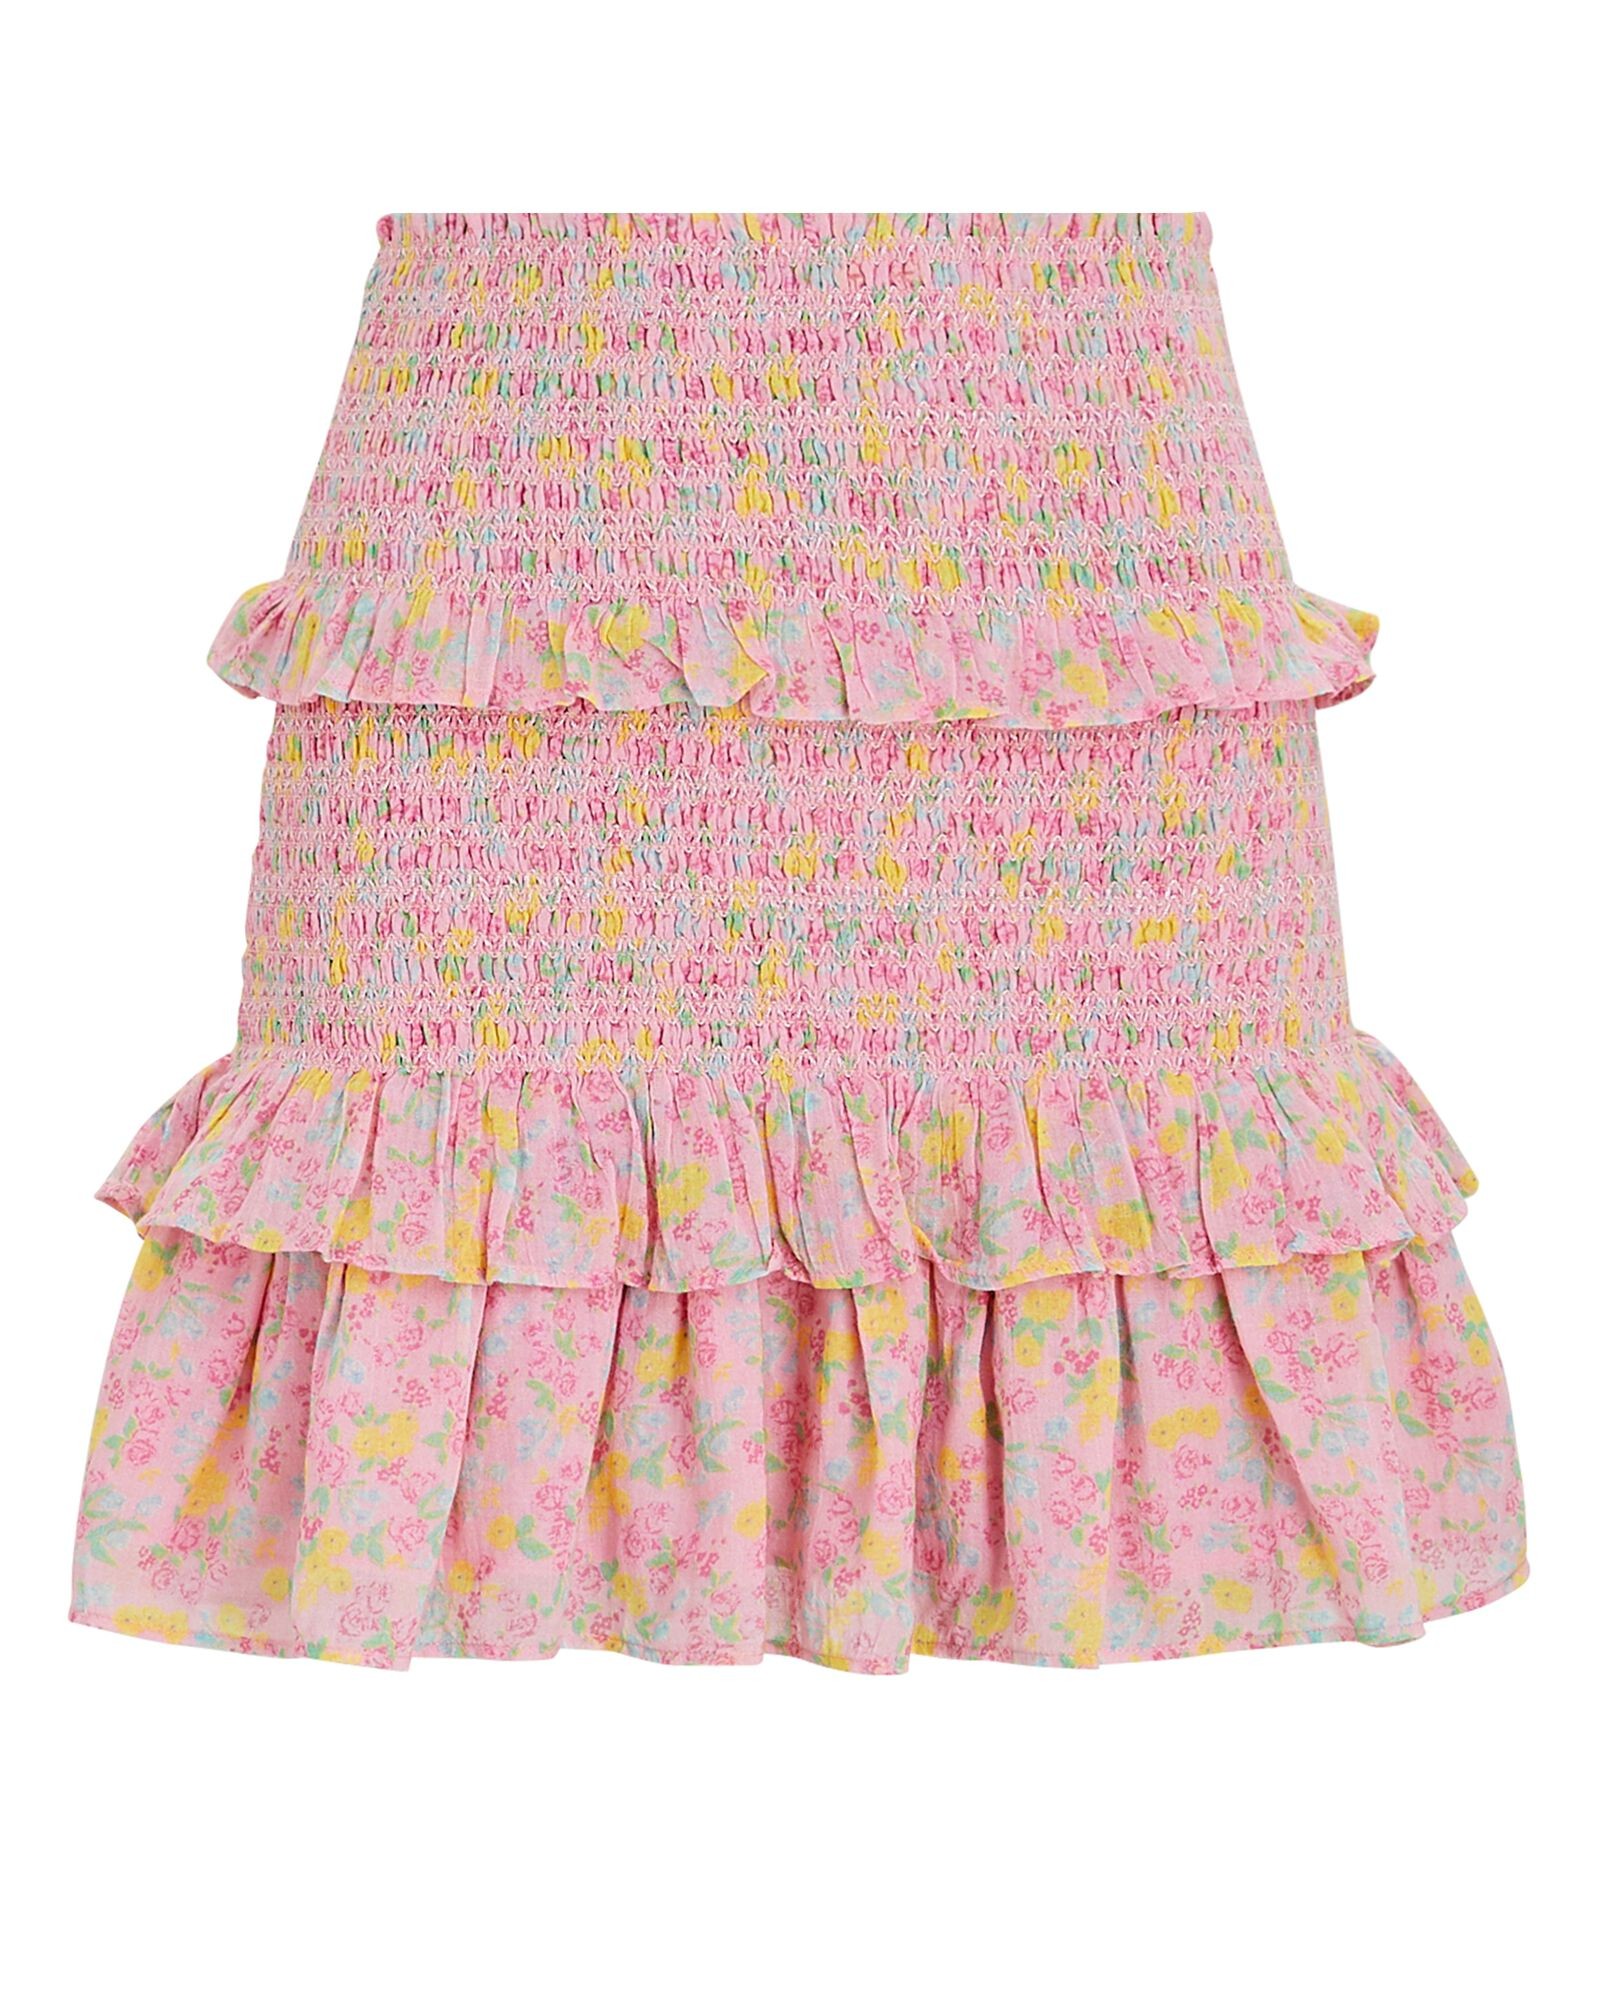 Sicily Smocked Floral Mini Skirt, PINK, hi-res